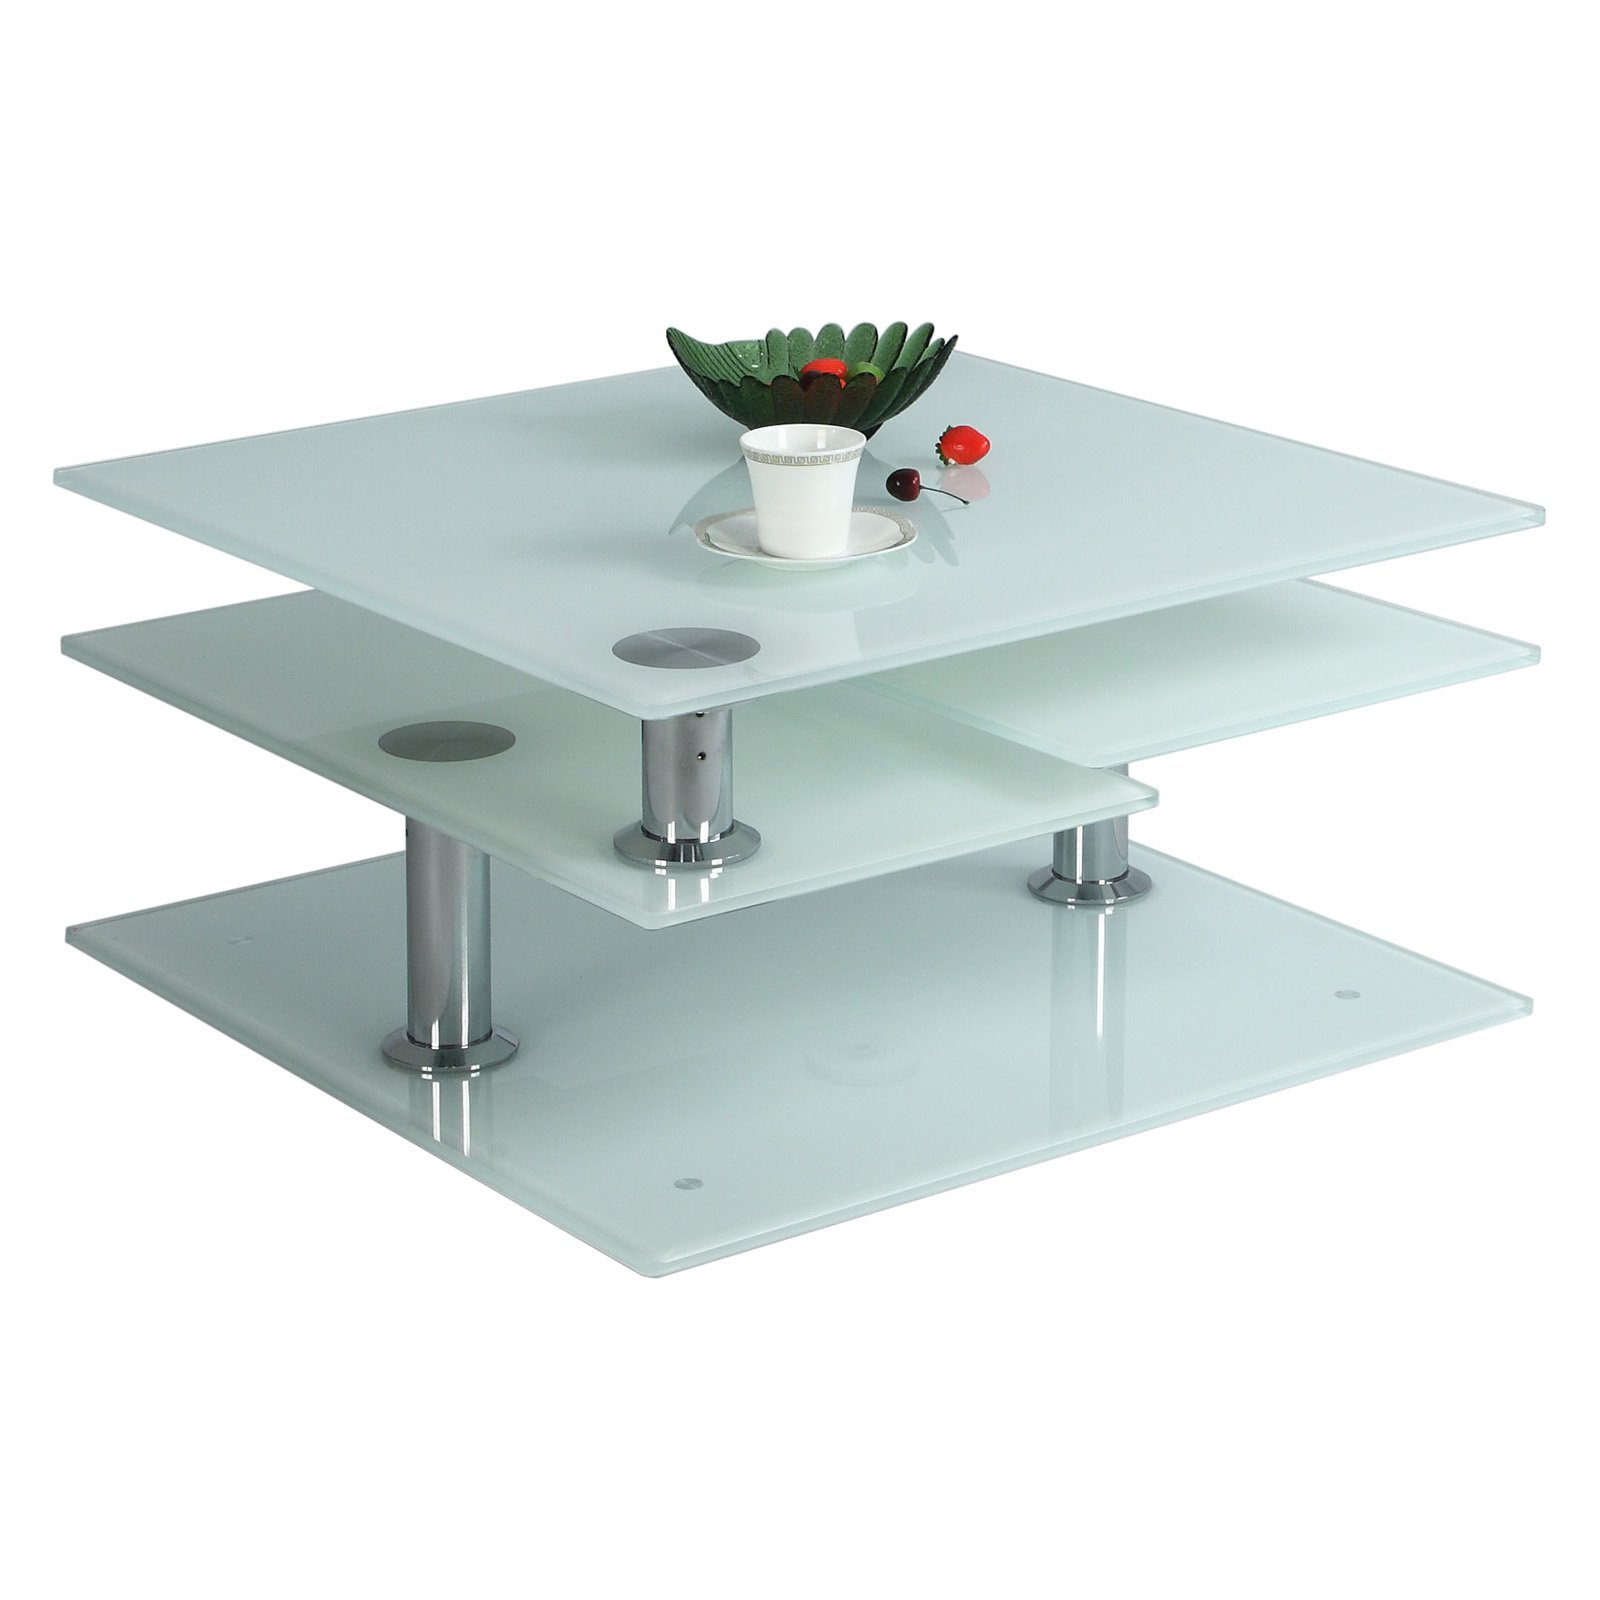 Chintaly Starphire Glass Cocktail Table by Chintaly Imports